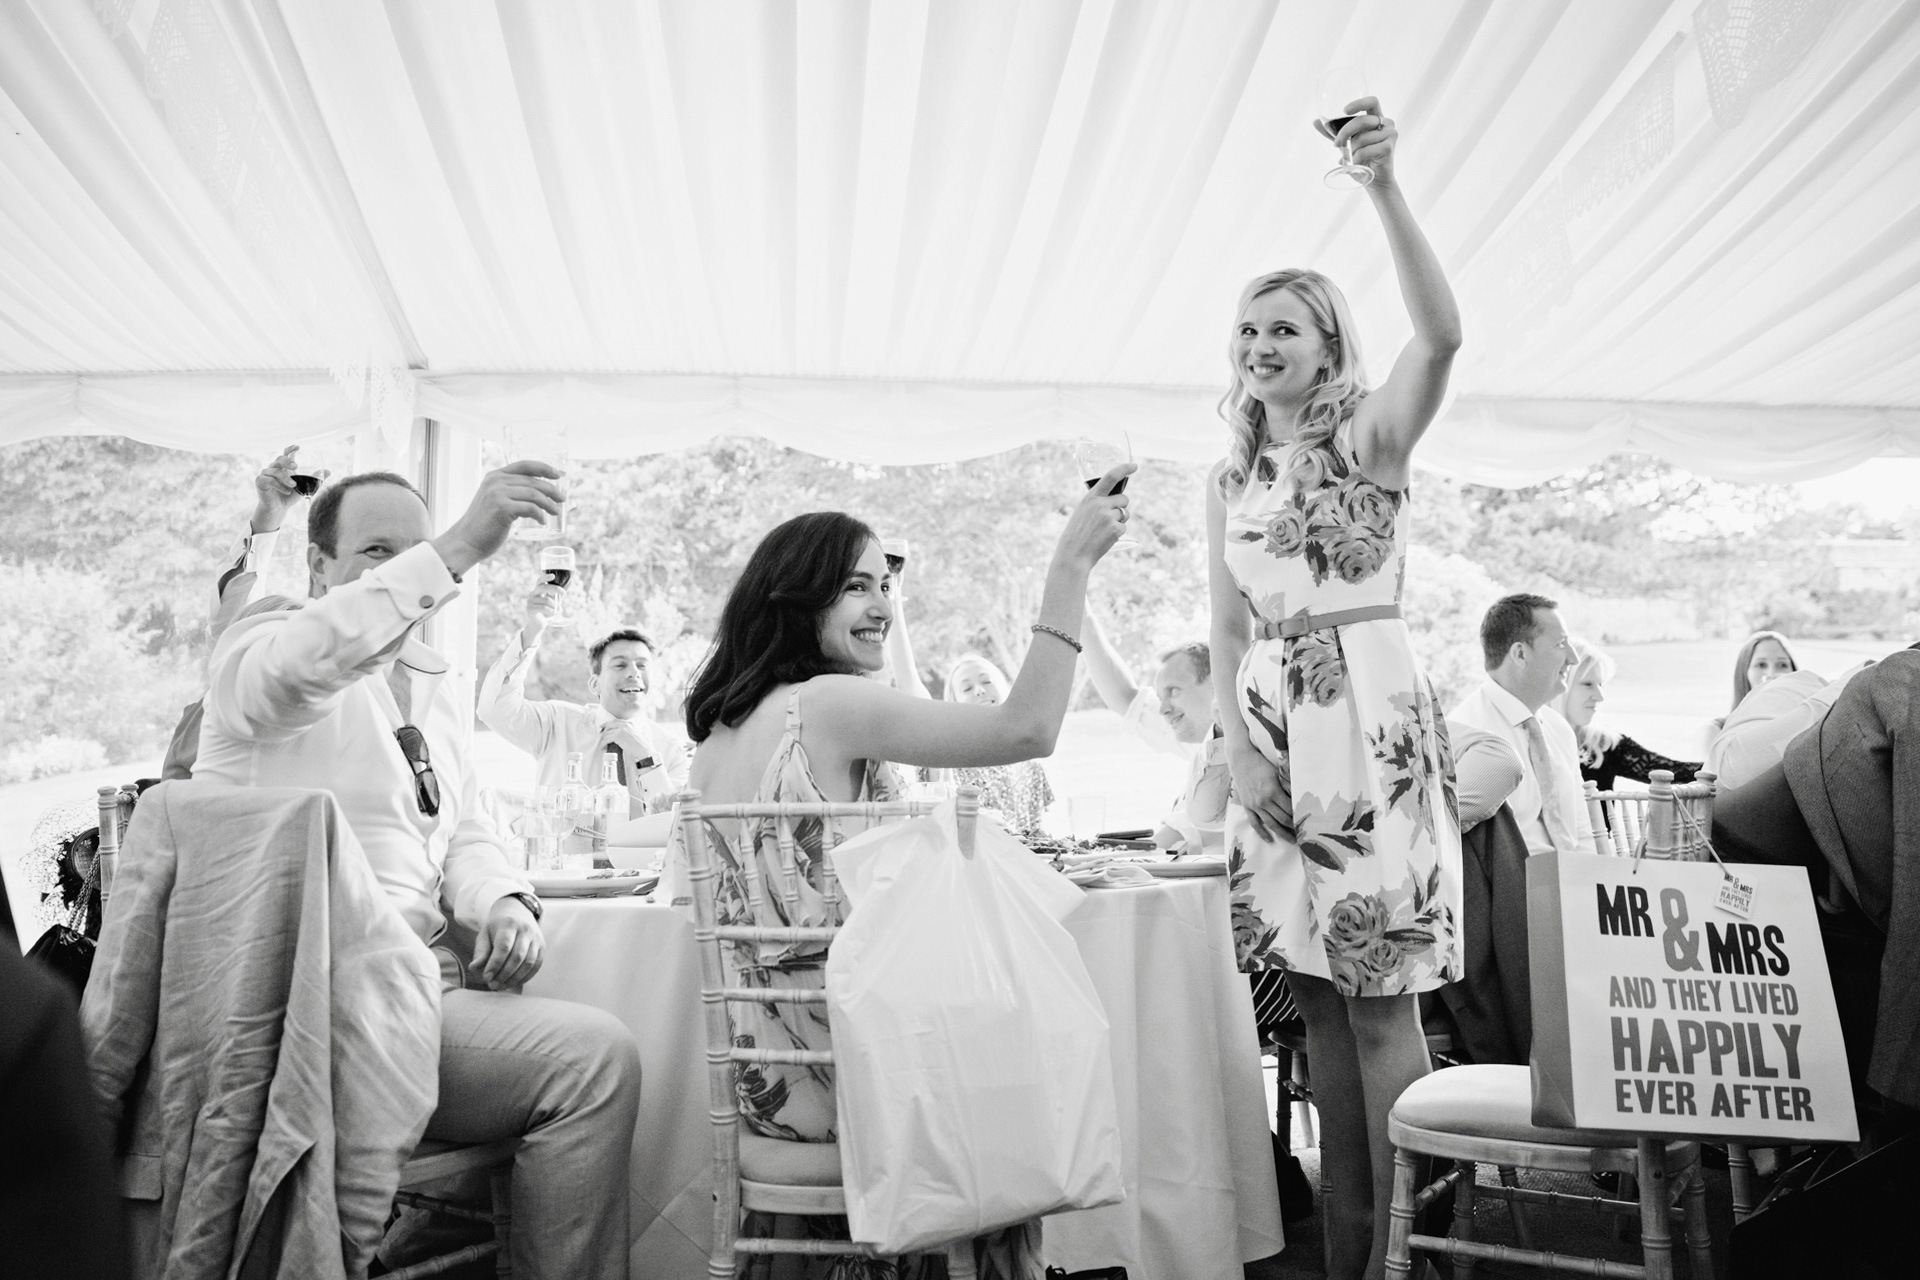 2017-WEDDING-portfolio-gemmawilliamsphotography_991.jpg